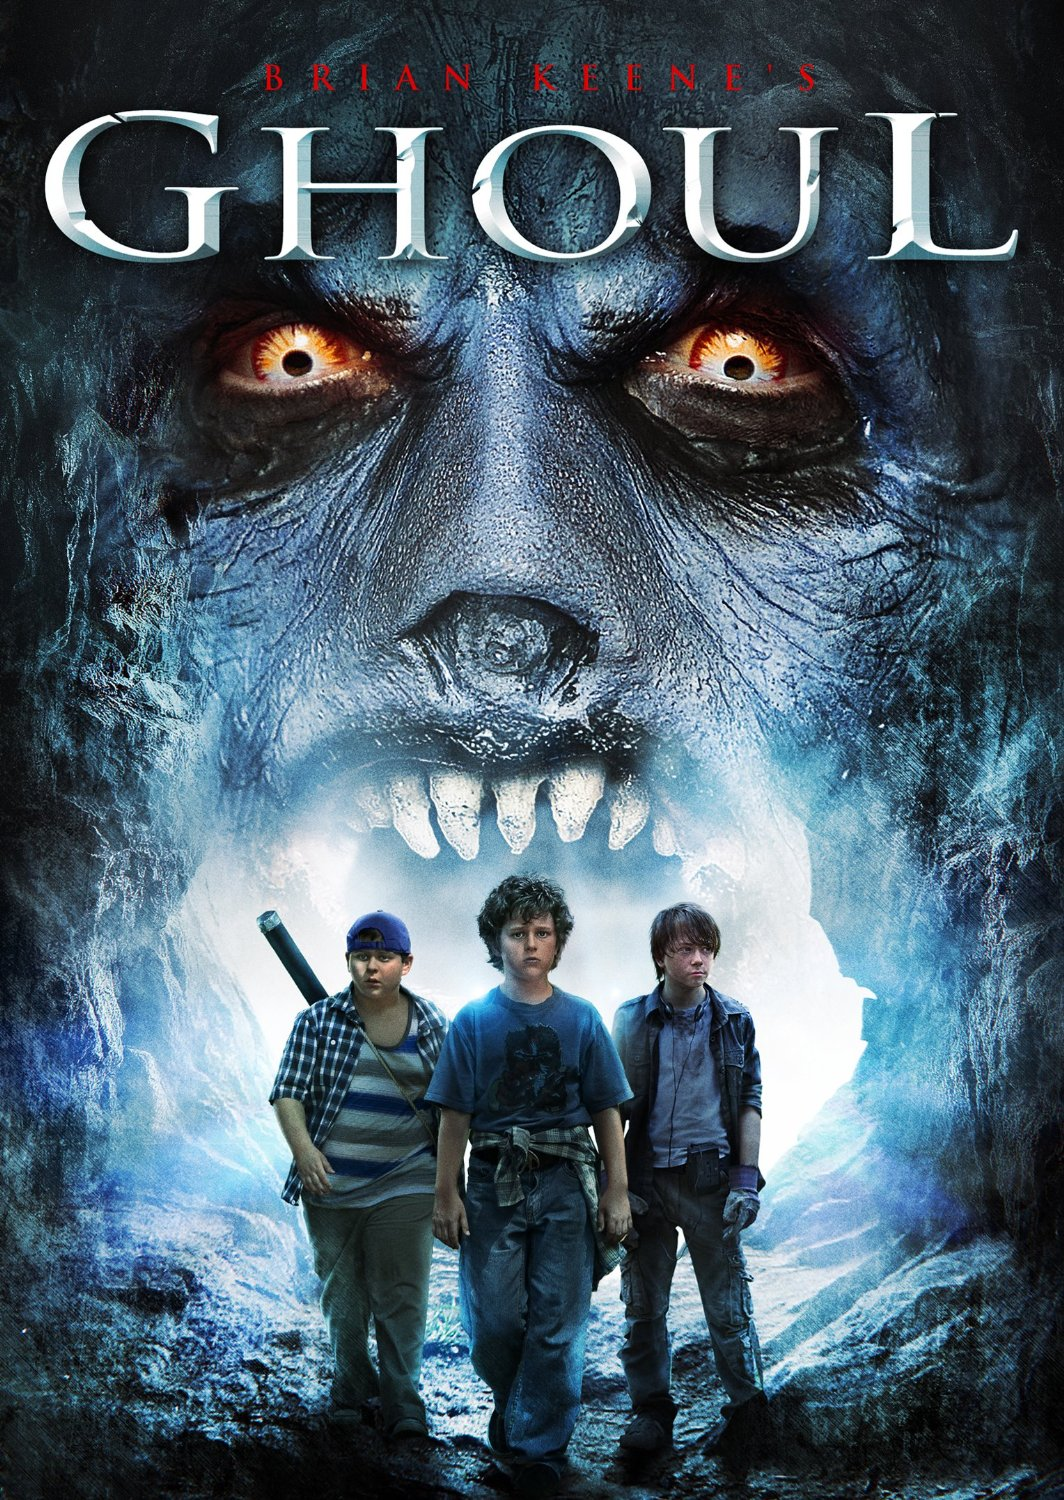 Ghoul DVD Review Ghoul DVD Review